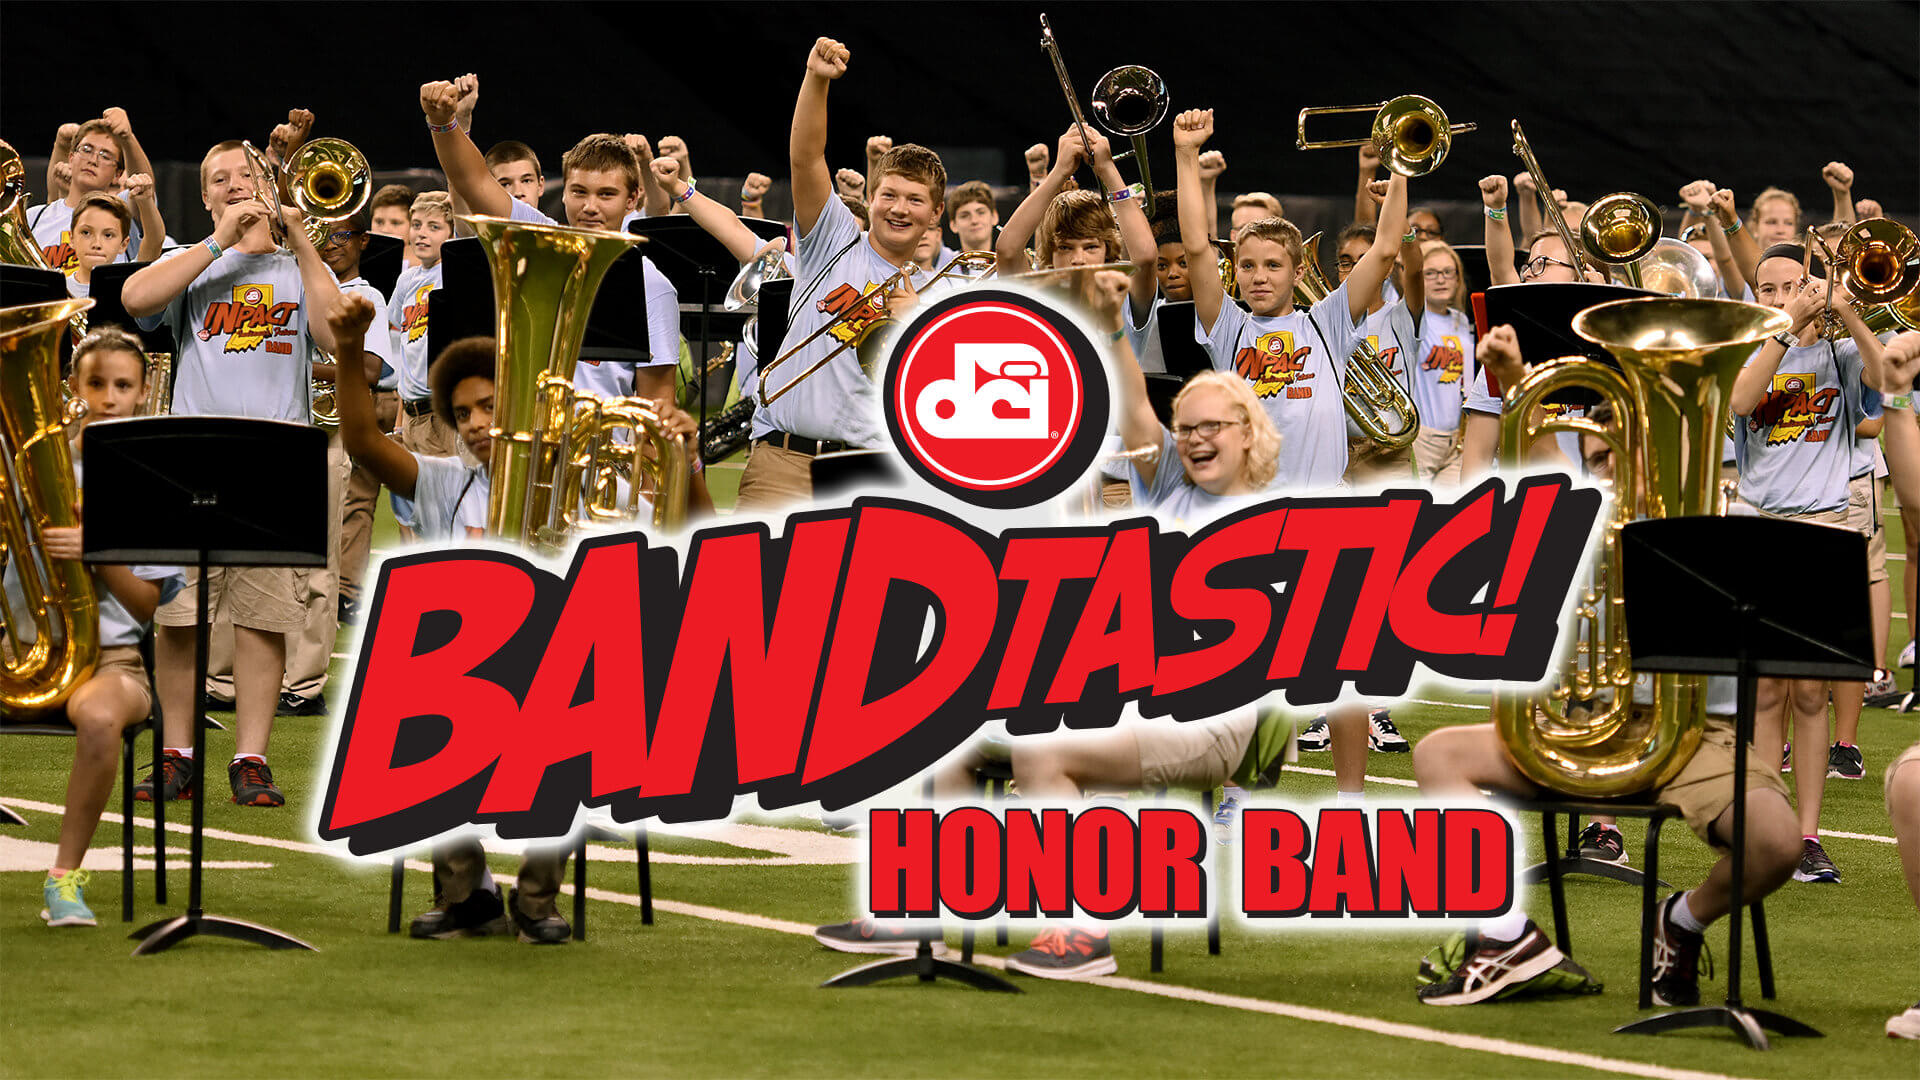 BANDtastic! Honor Band Opportunities